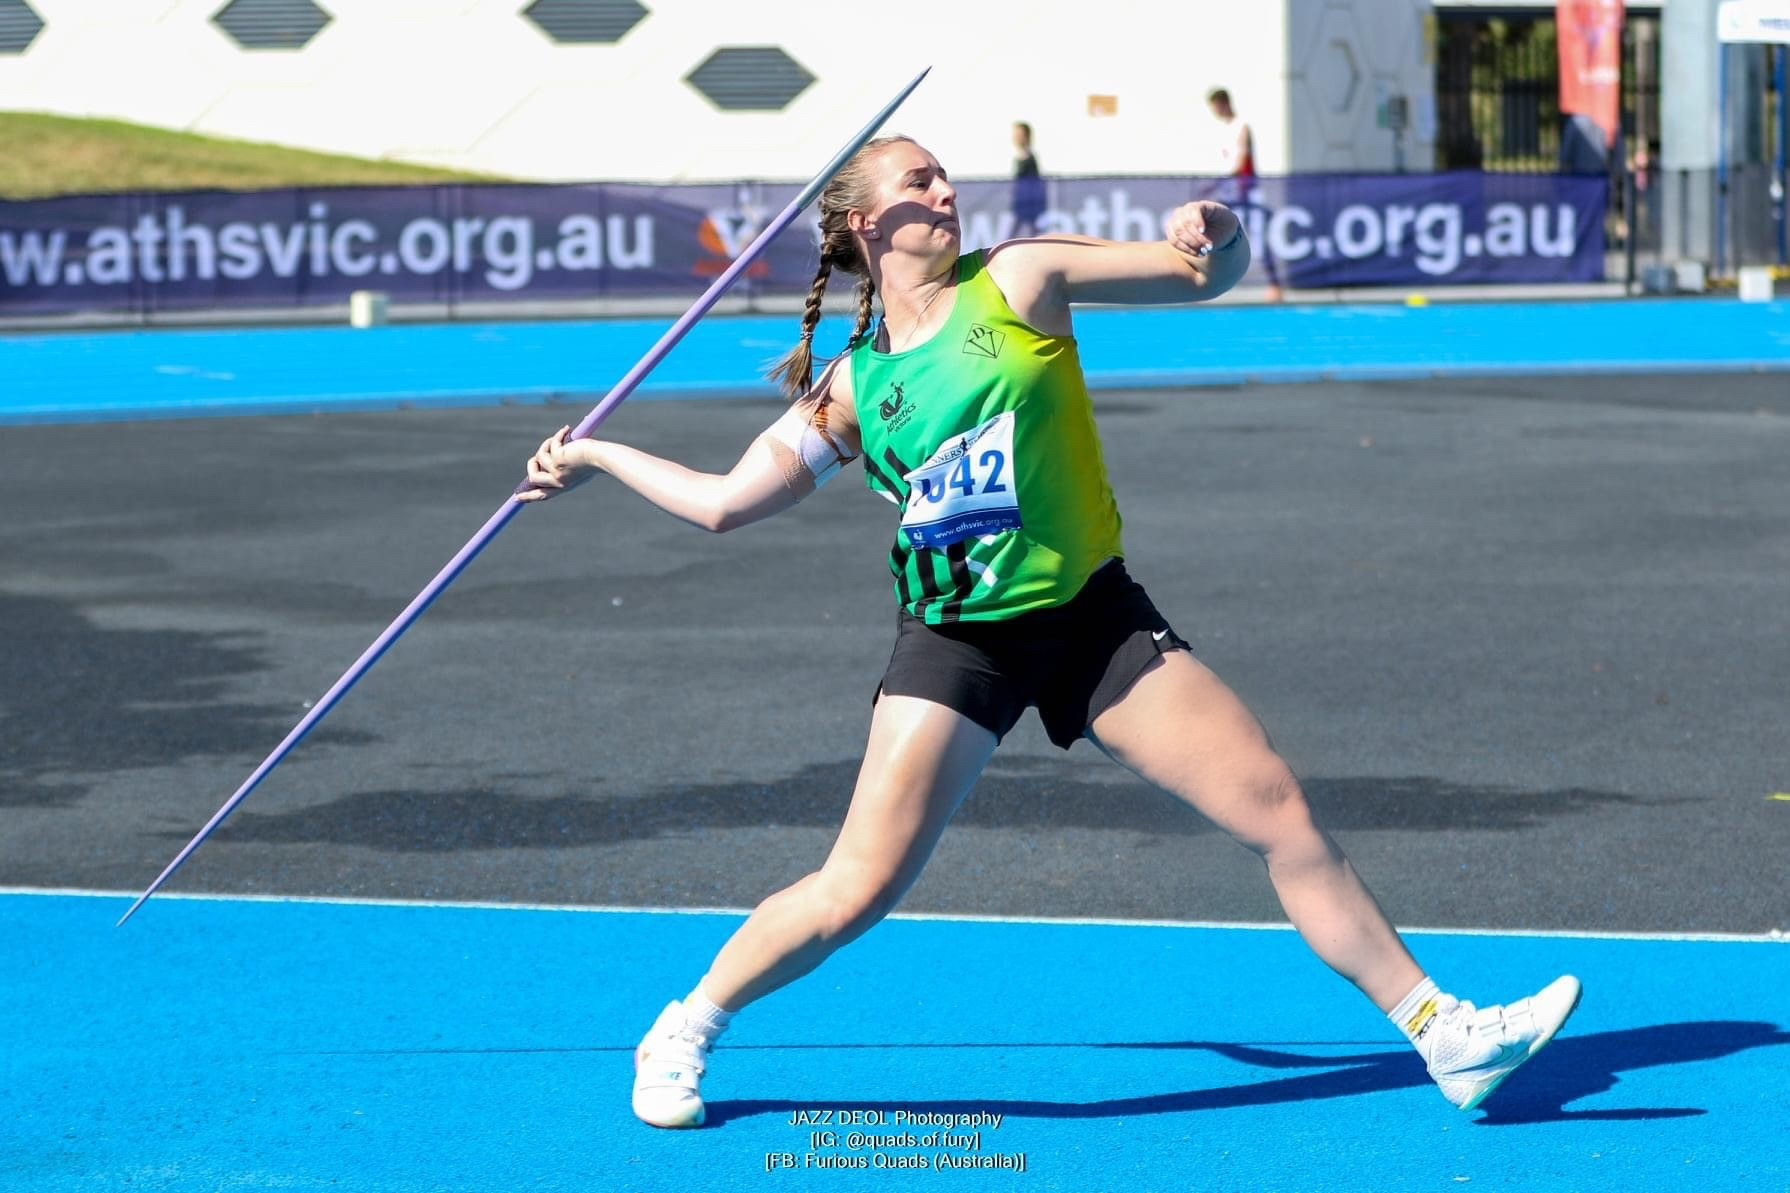 An athlete finding her motivation after COVID setbacks.